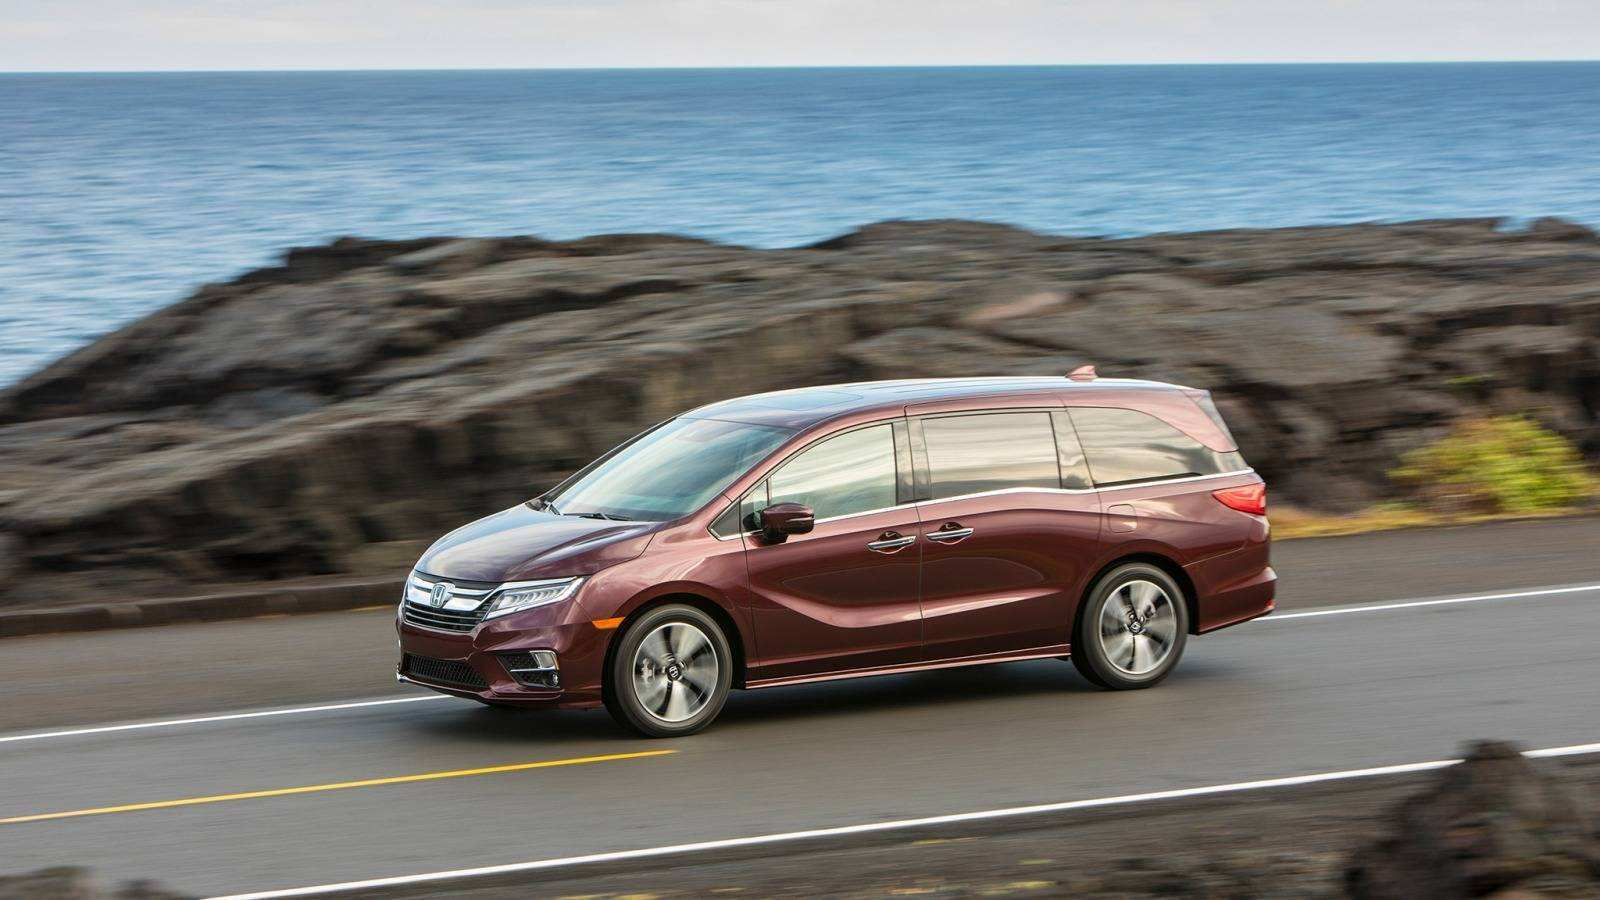 95 Best Honda Odyssey 2019 Vs 2020 Images